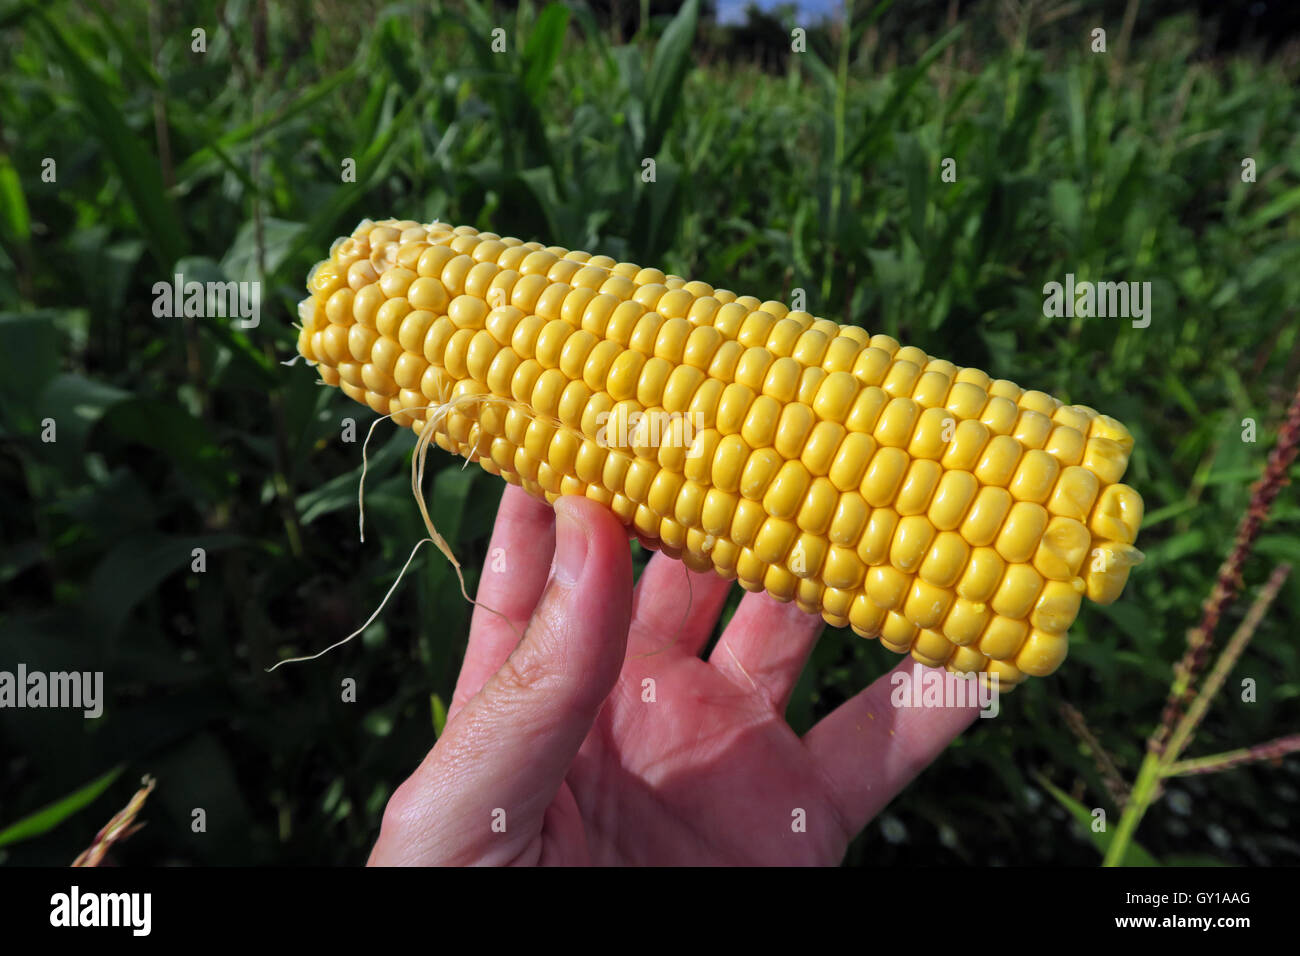 Sweetcorn cob held in a field of maize,Cheshire,England,UK - Stock Image